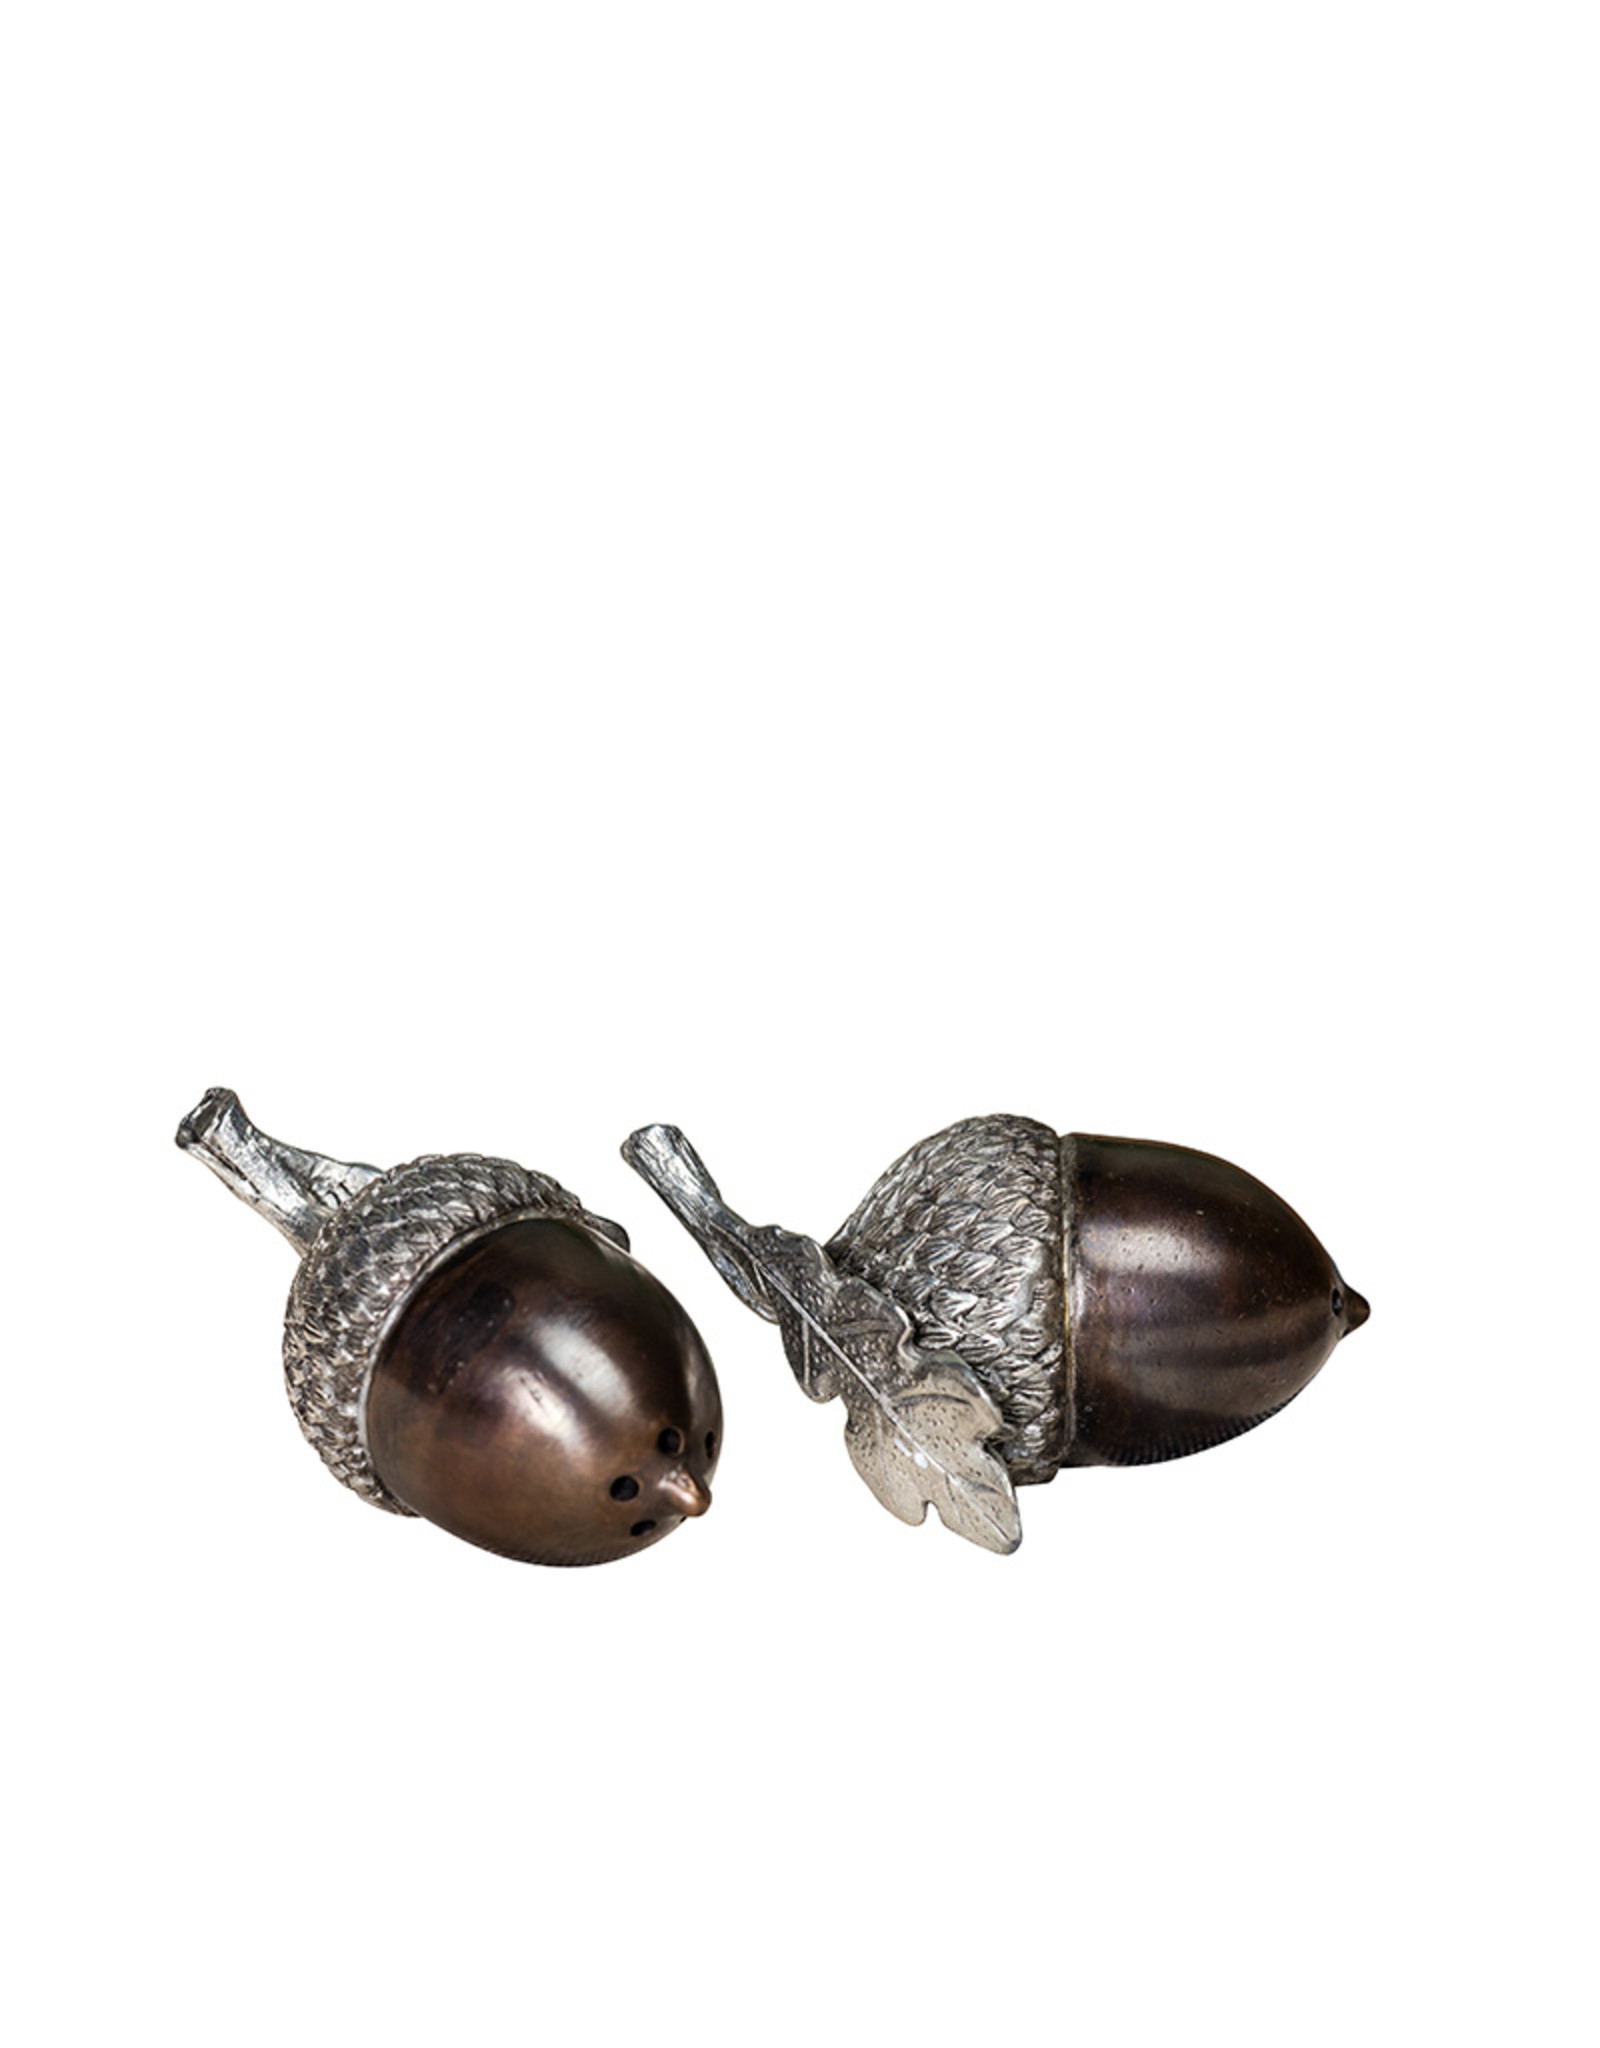 Acorn salt and pepper shaker set